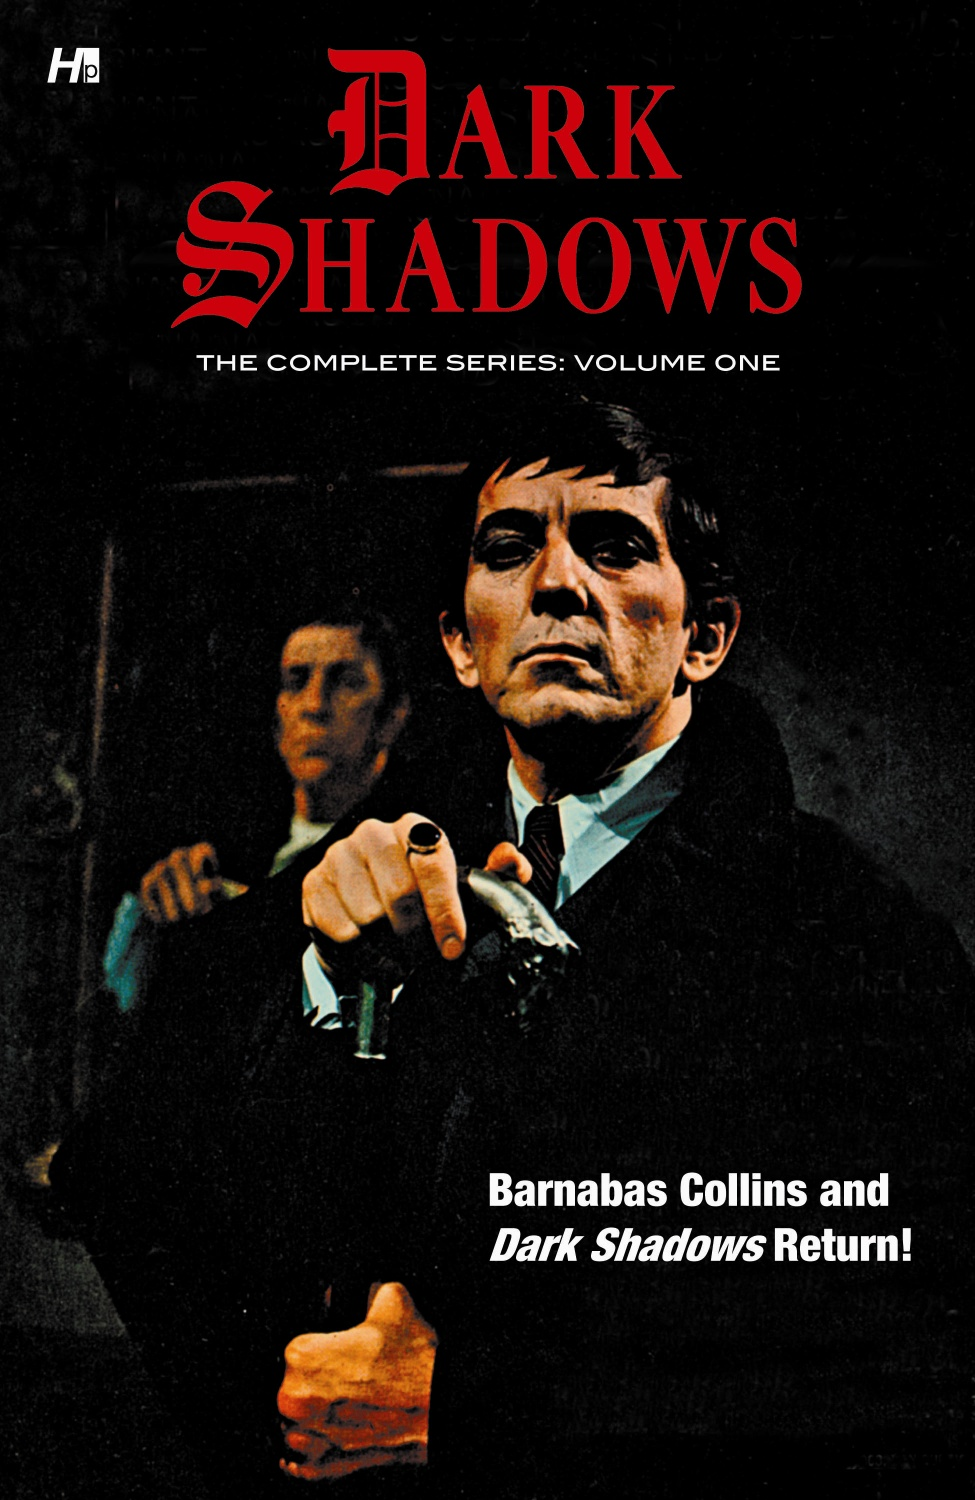 DARK SHADOWS: The Complete Series Volume One; ISBN 1-932563-45-8; Full ...